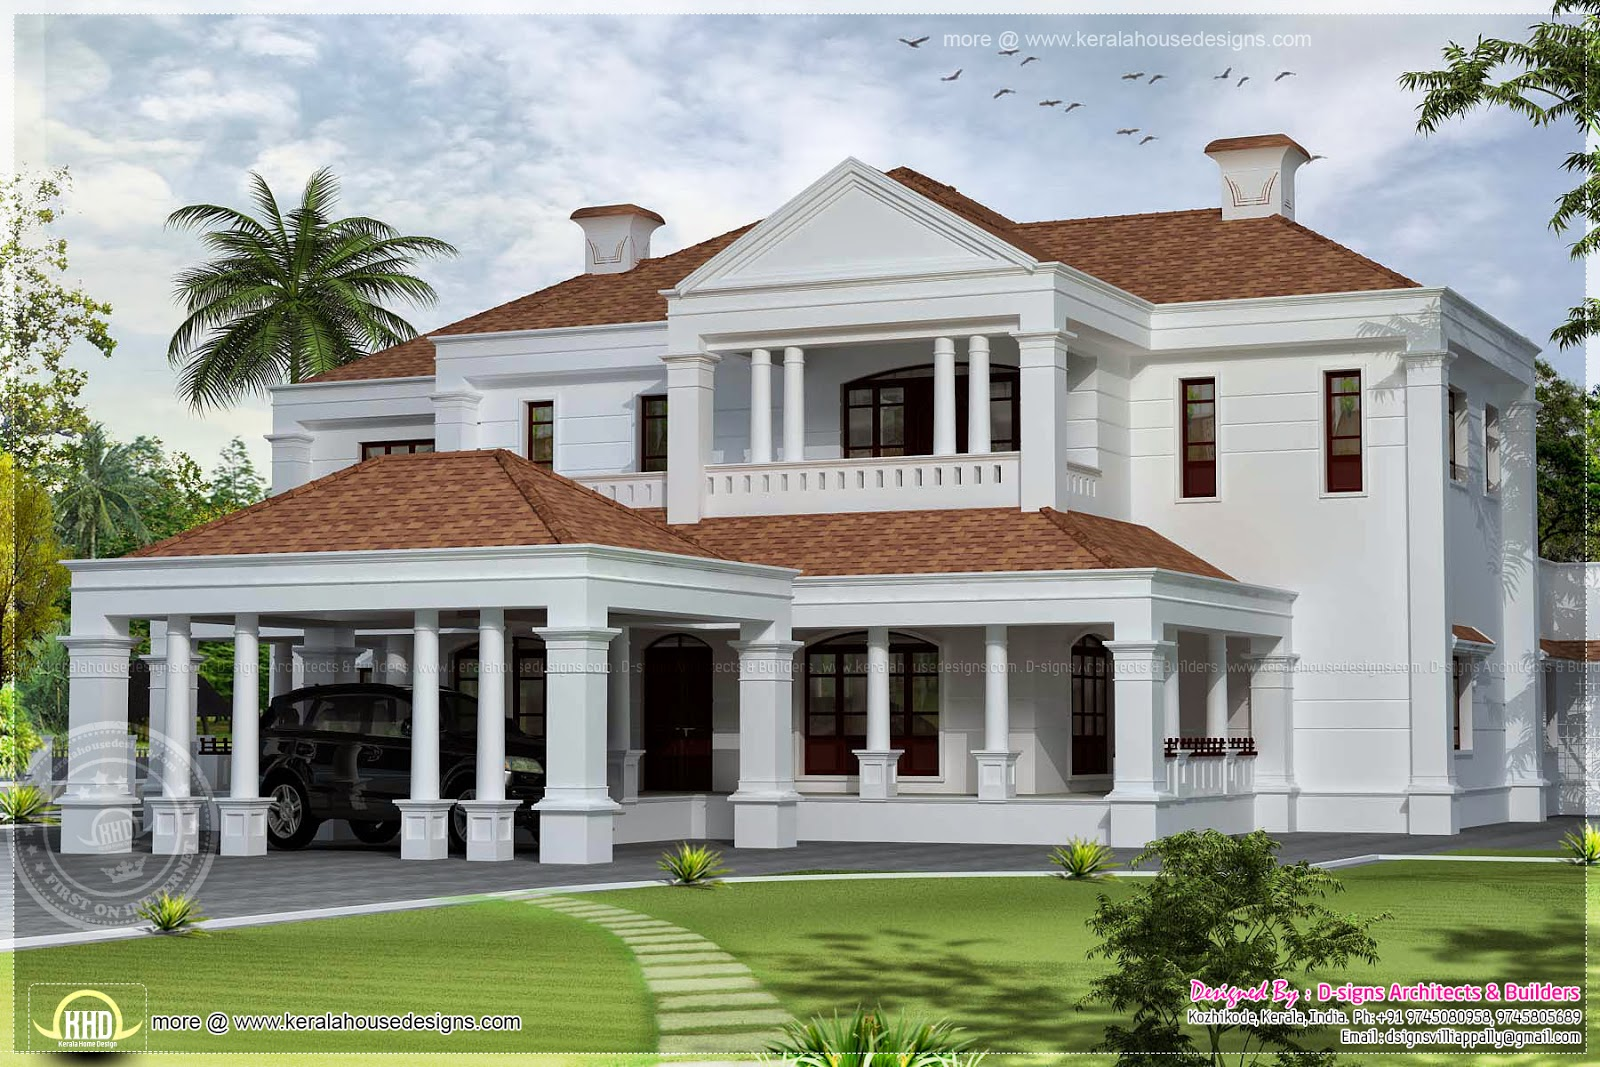 5900 sq ft colonial style villa exterior elevation home kerala plans. Black Bedroom Furniture Sets. Home Design Ideas